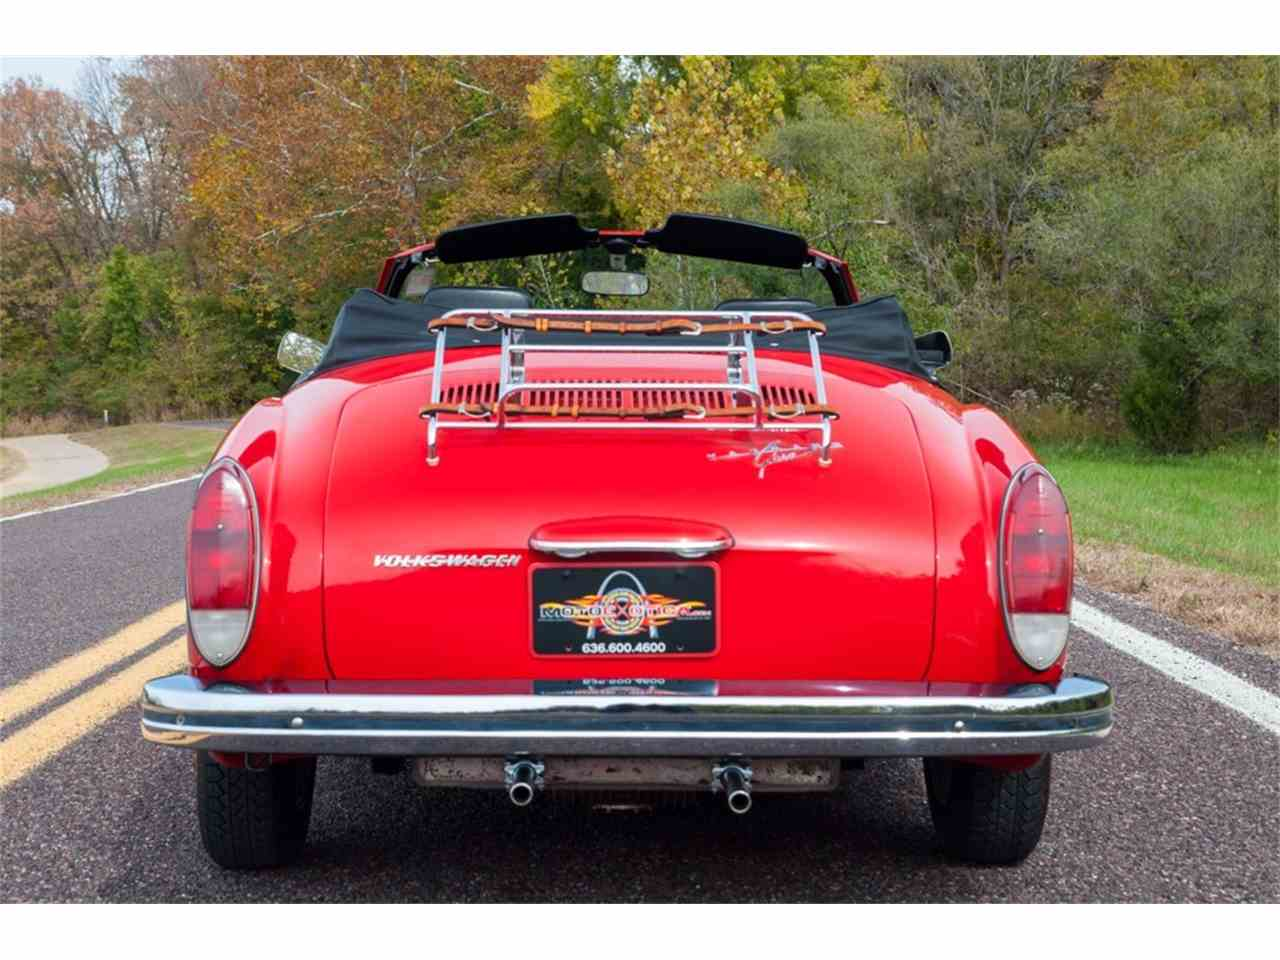 Large Picture of Classic '72 Volkswagen Karmann Ghia located in Missouri - $21,900.00 - MB4C